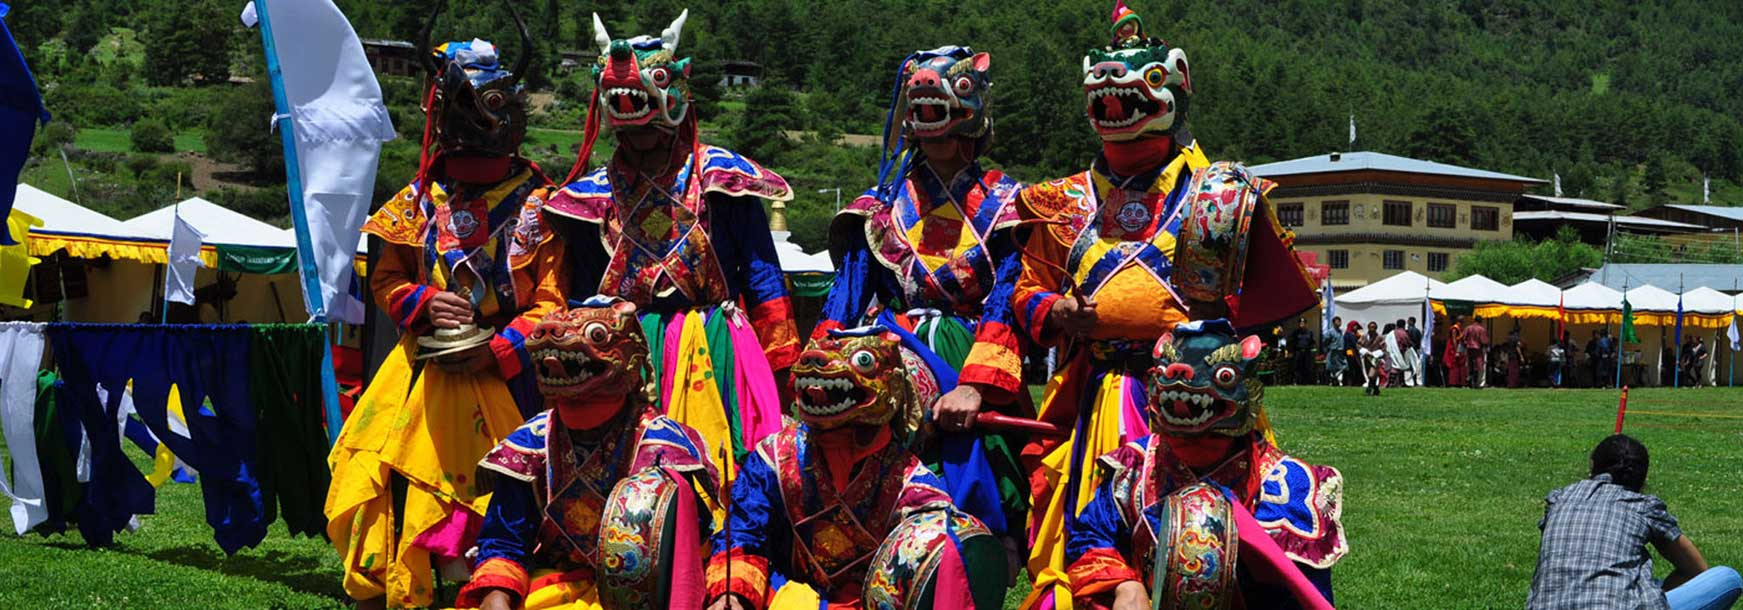 Mask Dancers of Haa Summer Festival, Bhutan